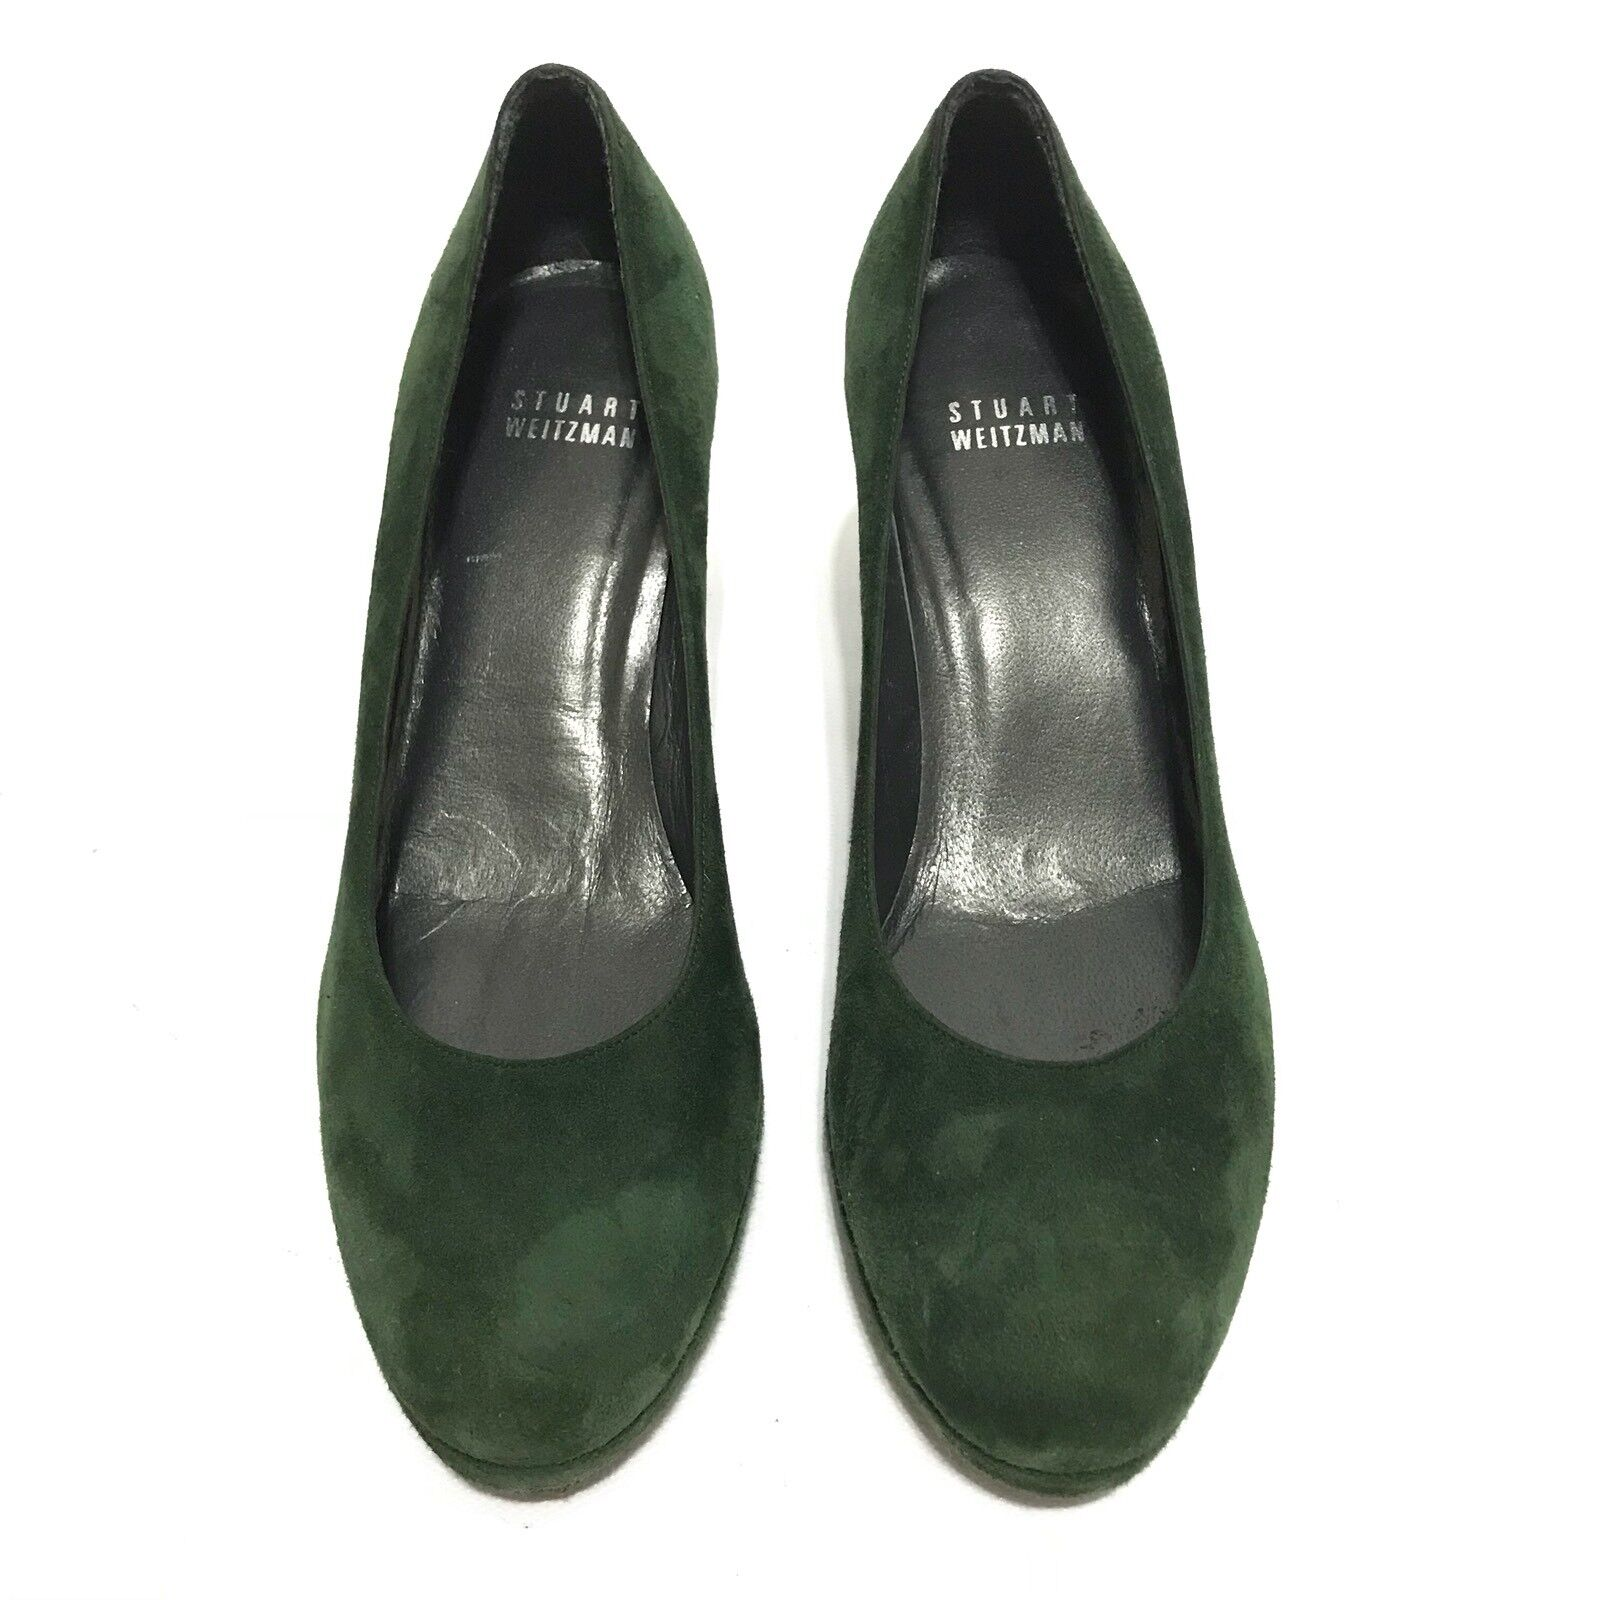 Stuart Weitzman Womens shoes Size Size Size 6 Heel Green Suede Office Career Wear Dressy 2c77bb